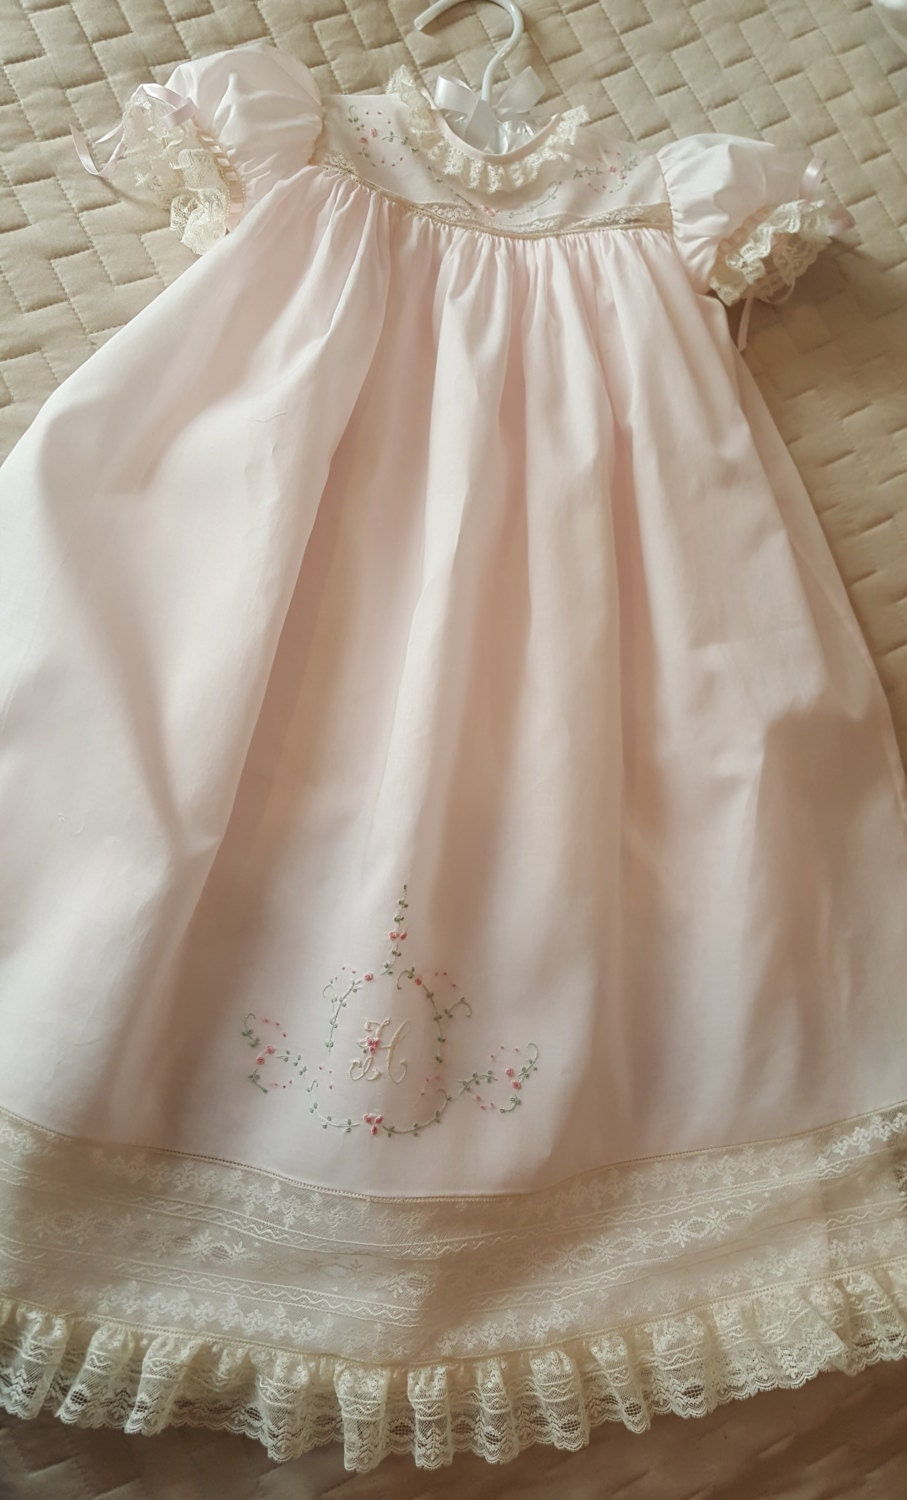 Long baby dress with hand embroidered yoke and skirt front